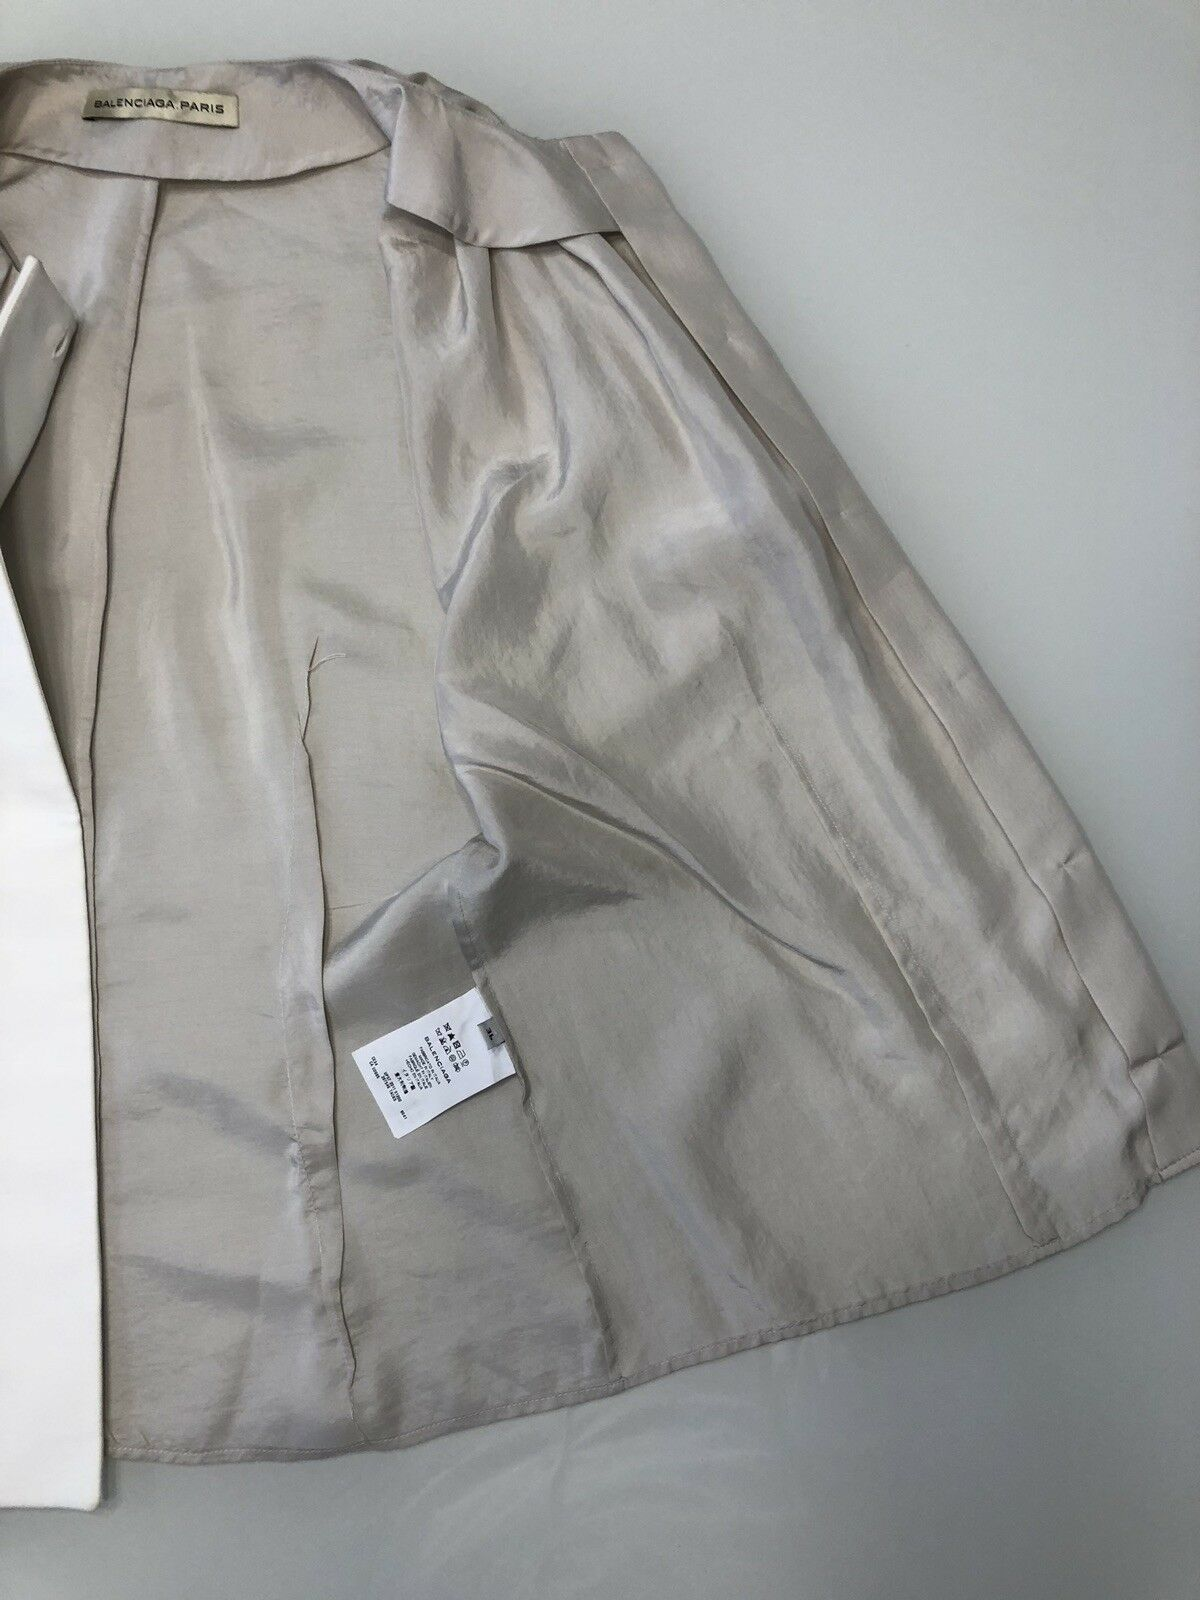 Balenciaga Silk Blouse Top Taupe Cap Sleeves Size… - image 5